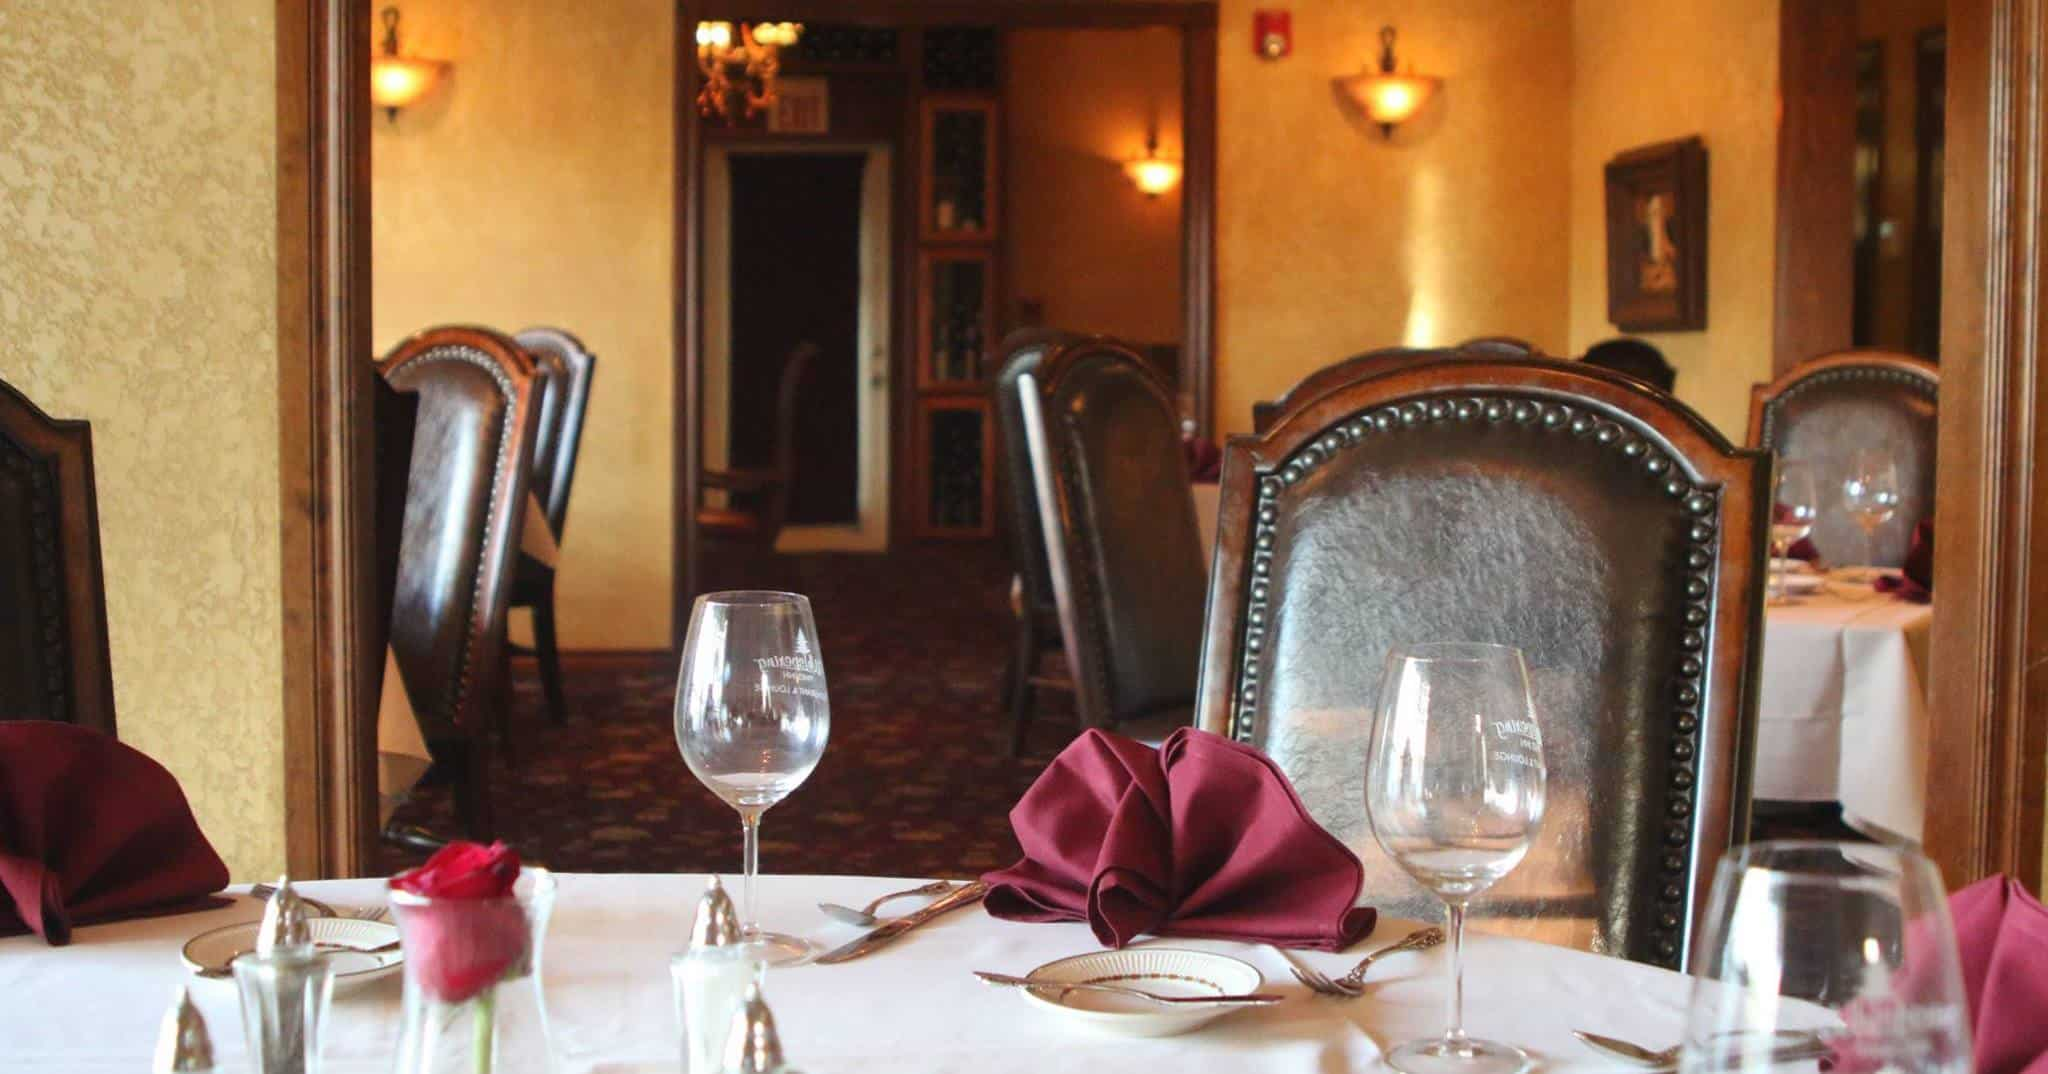 Best Restaurants For Valentine's Day In Oklahoma City